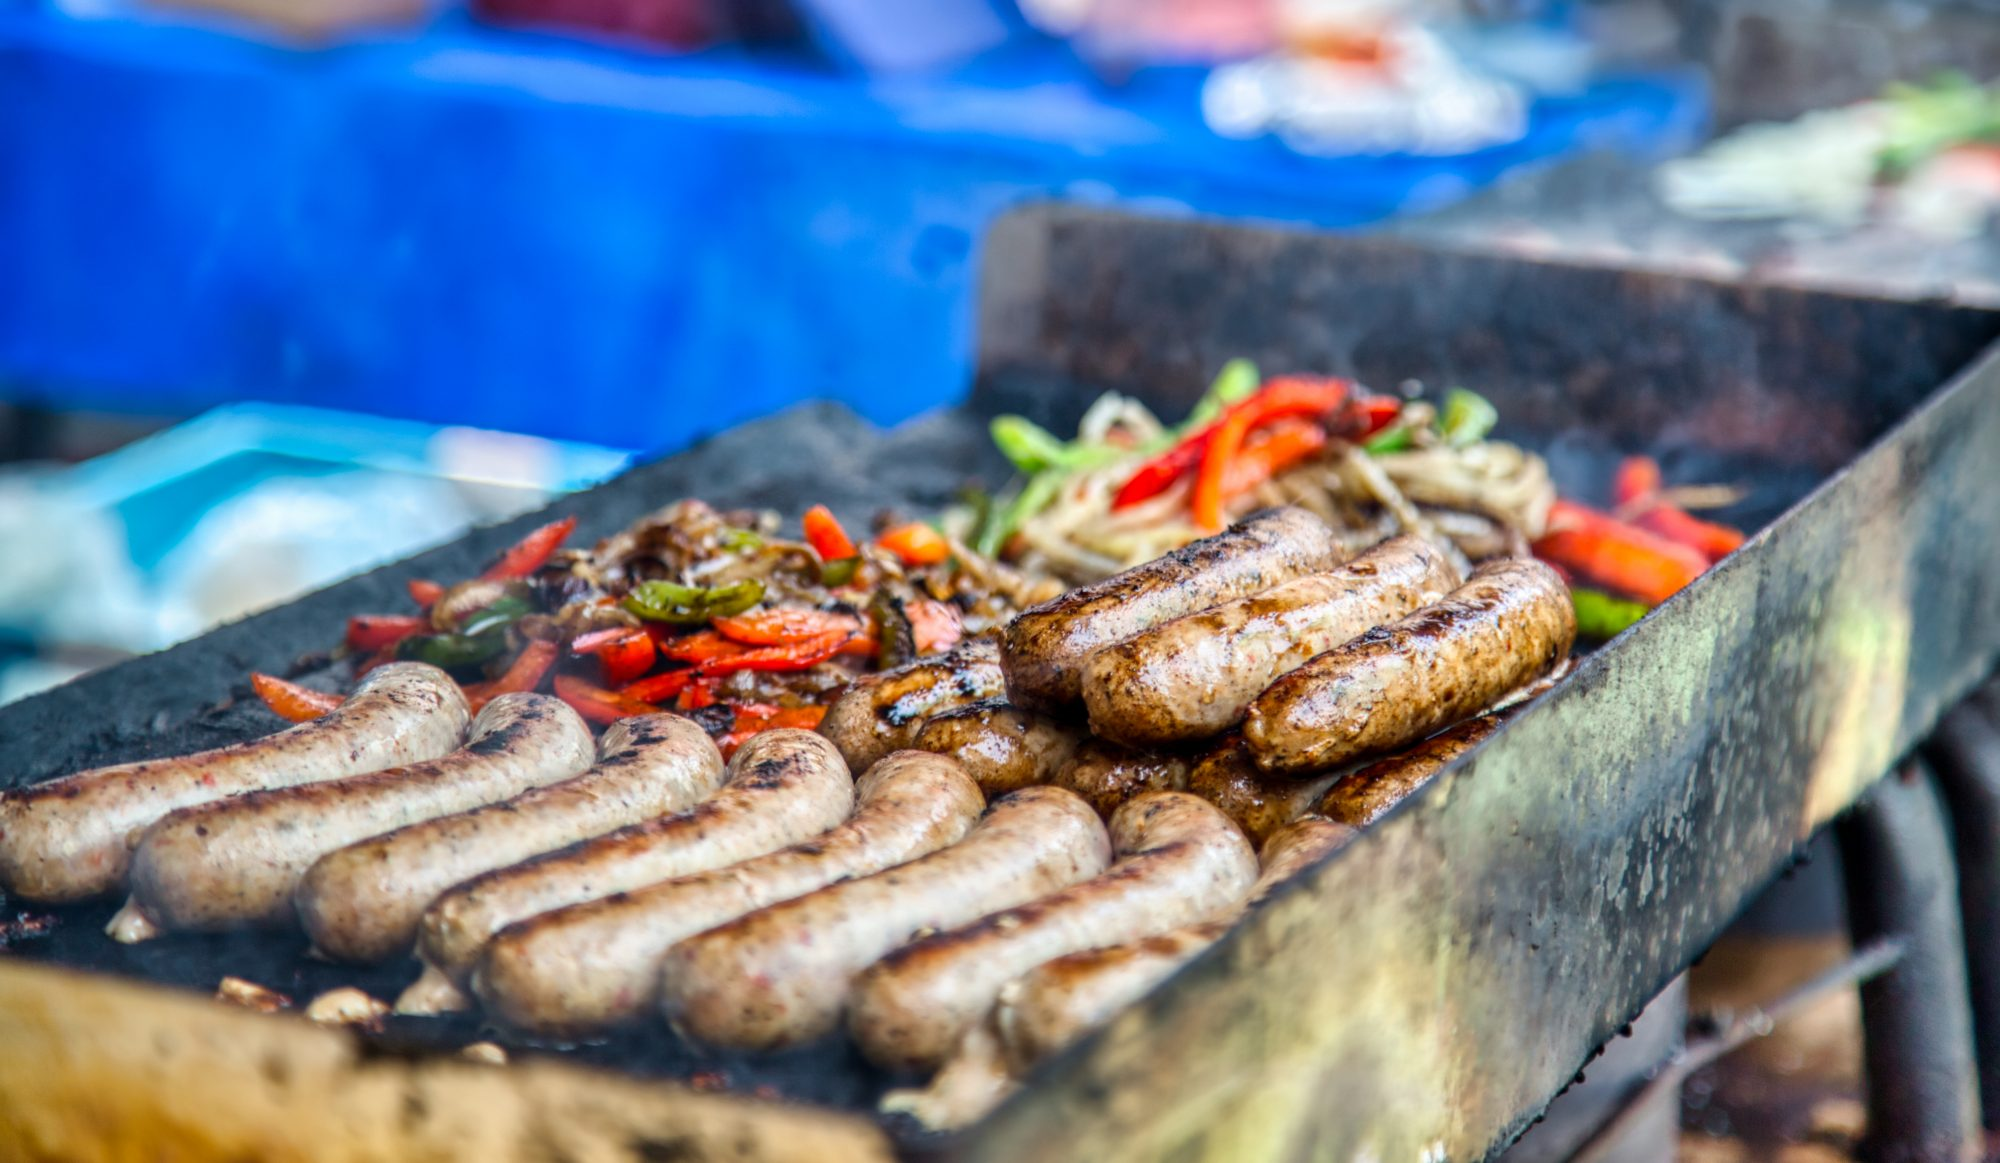 lots of sausage and peppers on the grill at an outdoor market